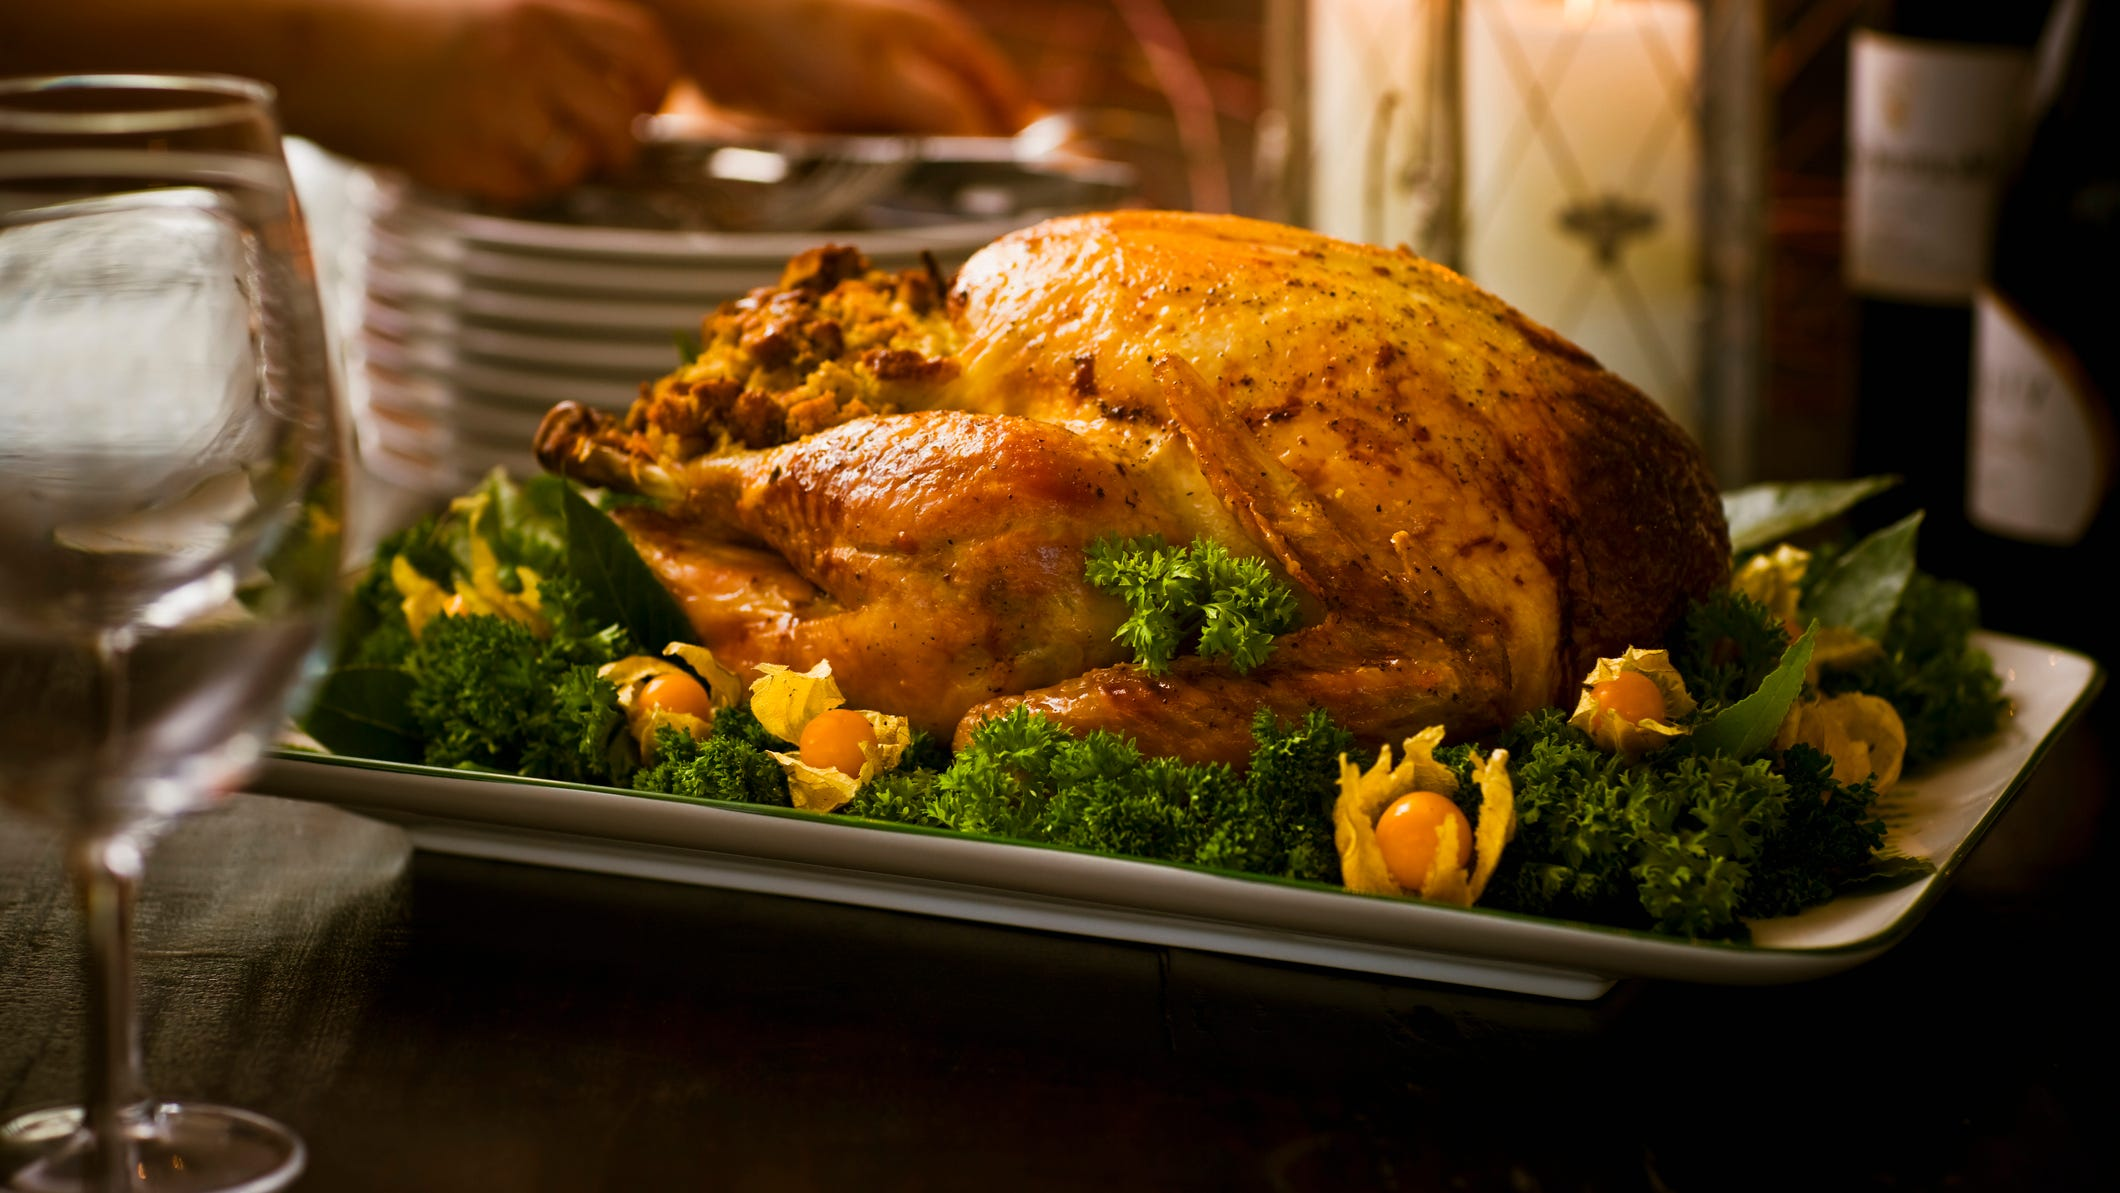 Fly out as early as you can on Thanksgiving Day and you won't miss a minute of the feast or the football game.